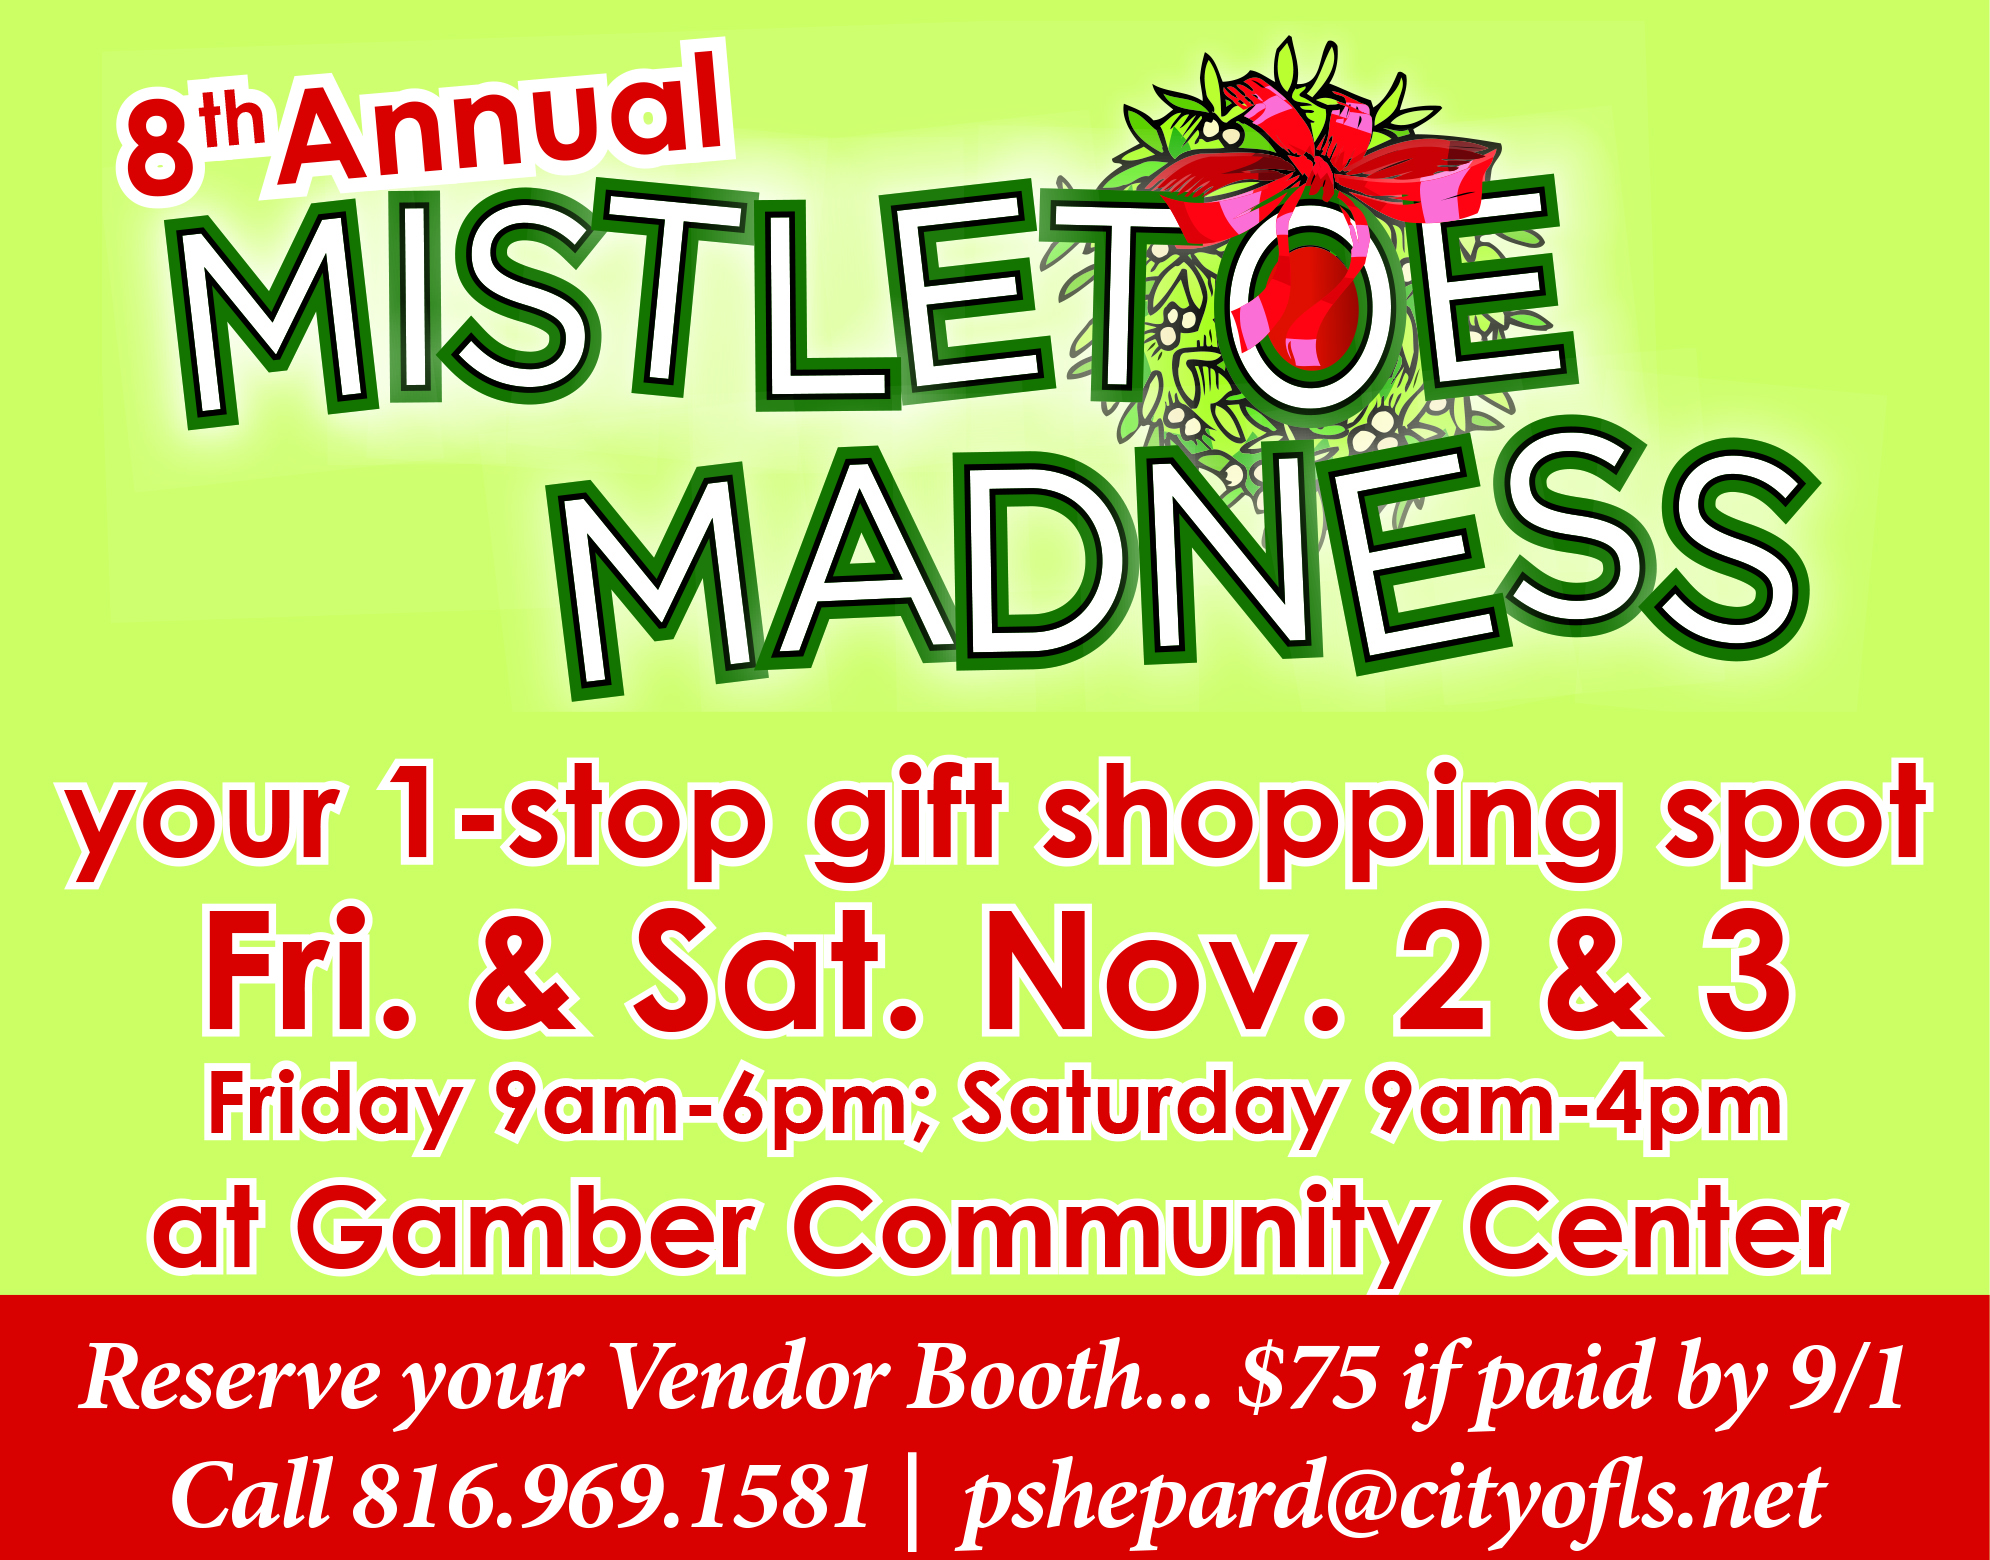 Mistletoe Madness 2017